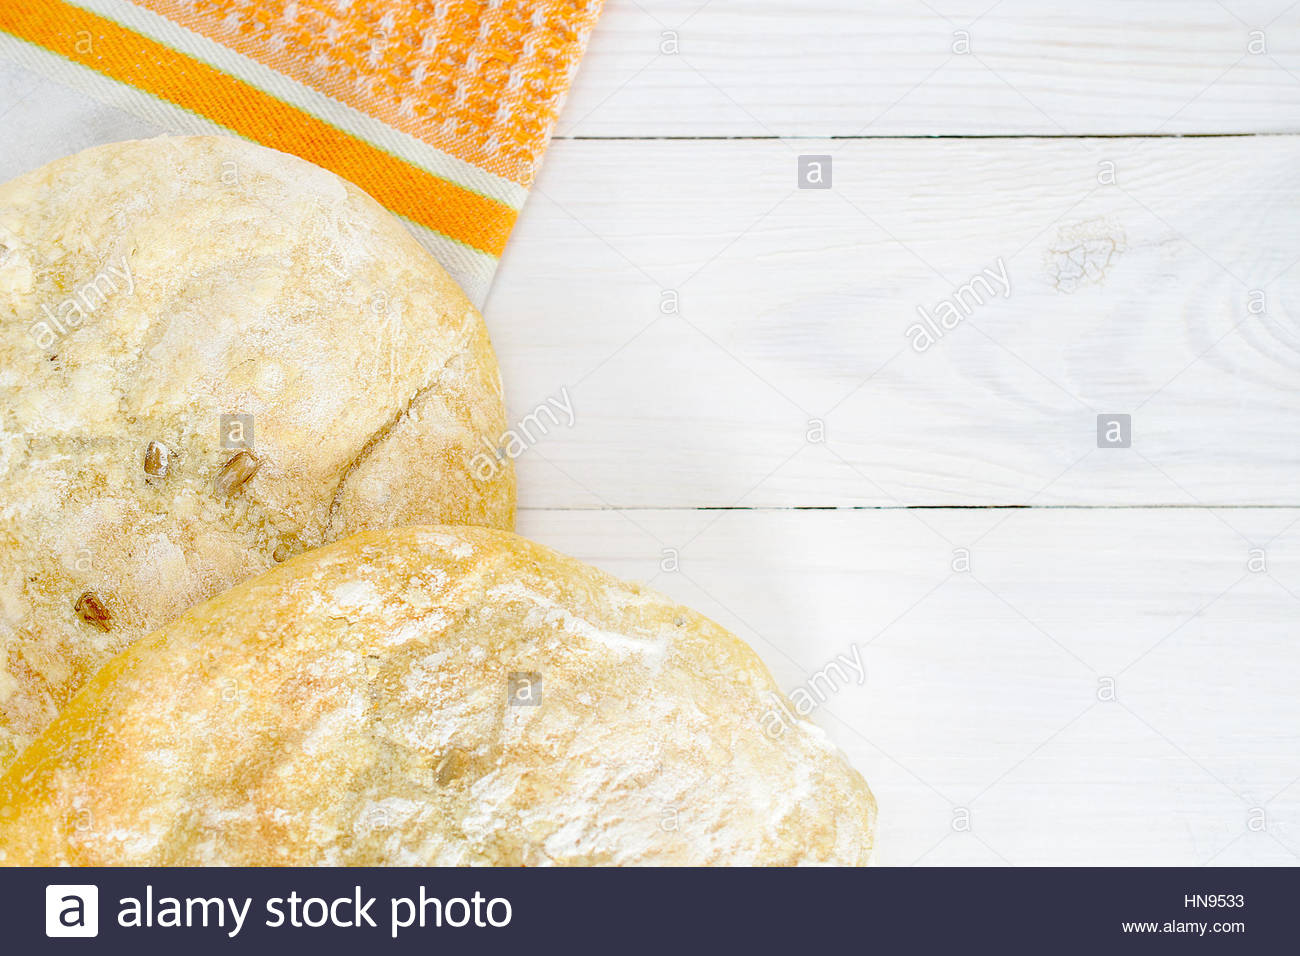 homemade ciabatta on a white wooden background - Stock Image